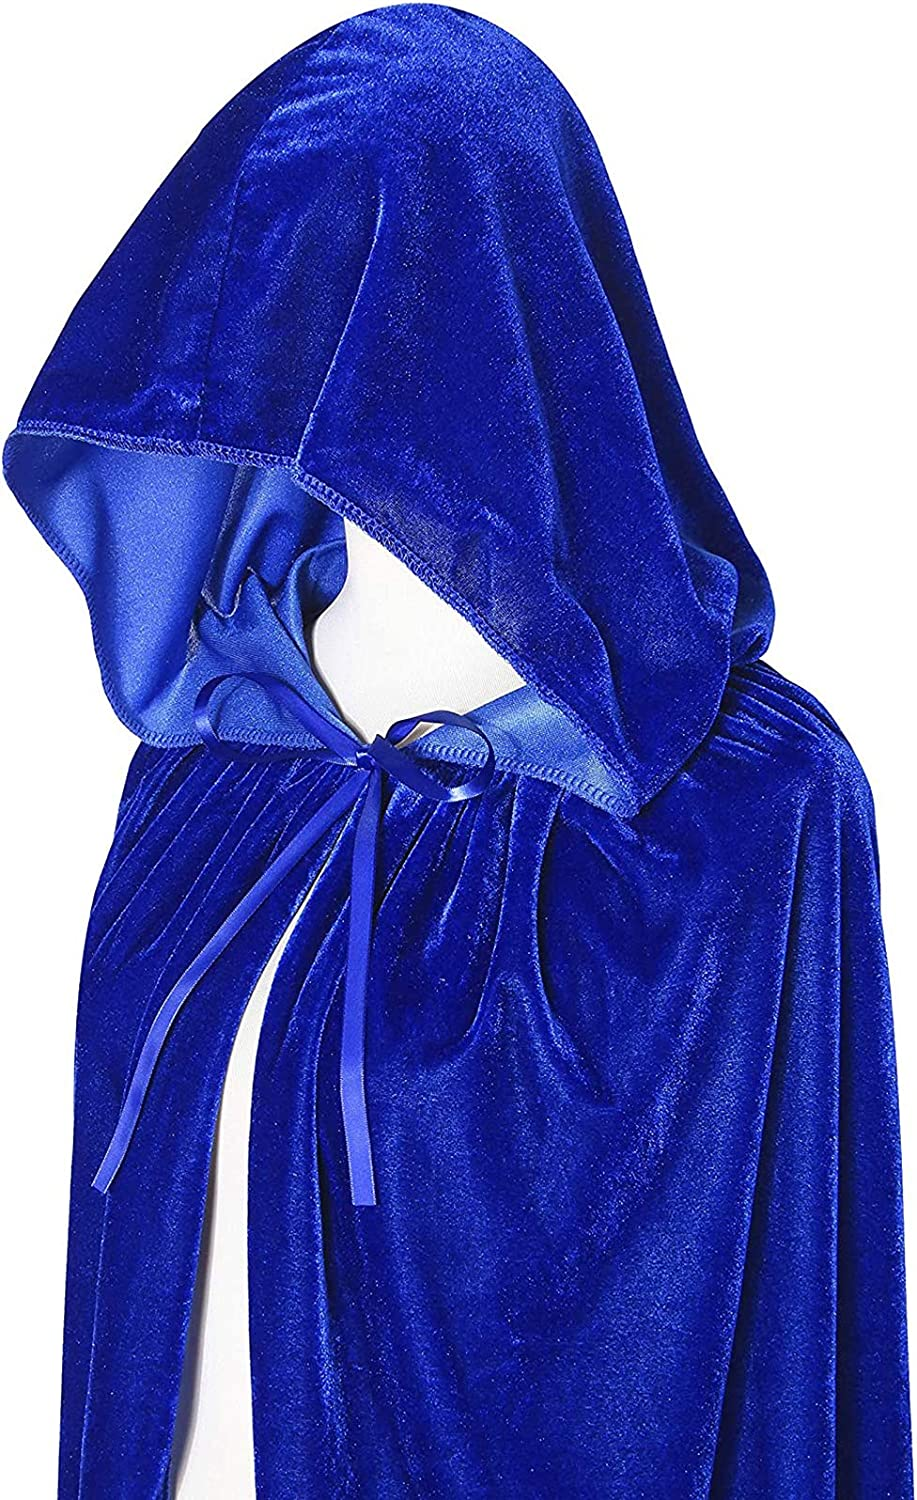 HICOSKY Hooded Cloak Cape Christmas Halloween Cosplay Costumes for Women Men